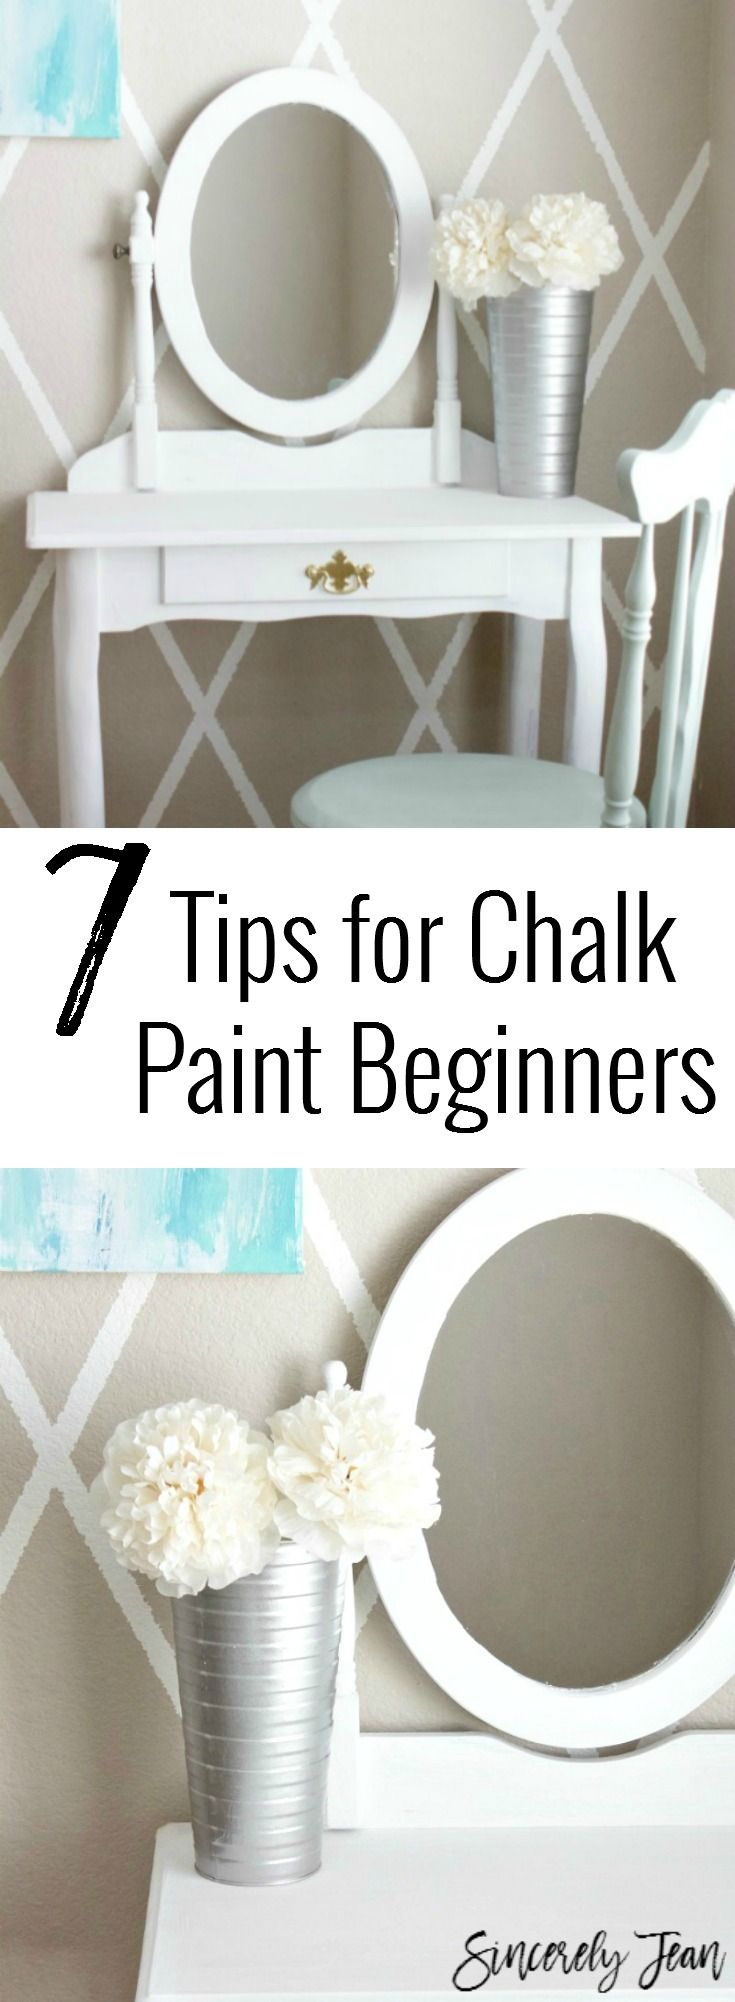 Tips for Chalk Paint Beginners - Vanity makeover | www.SincerelyJean.com